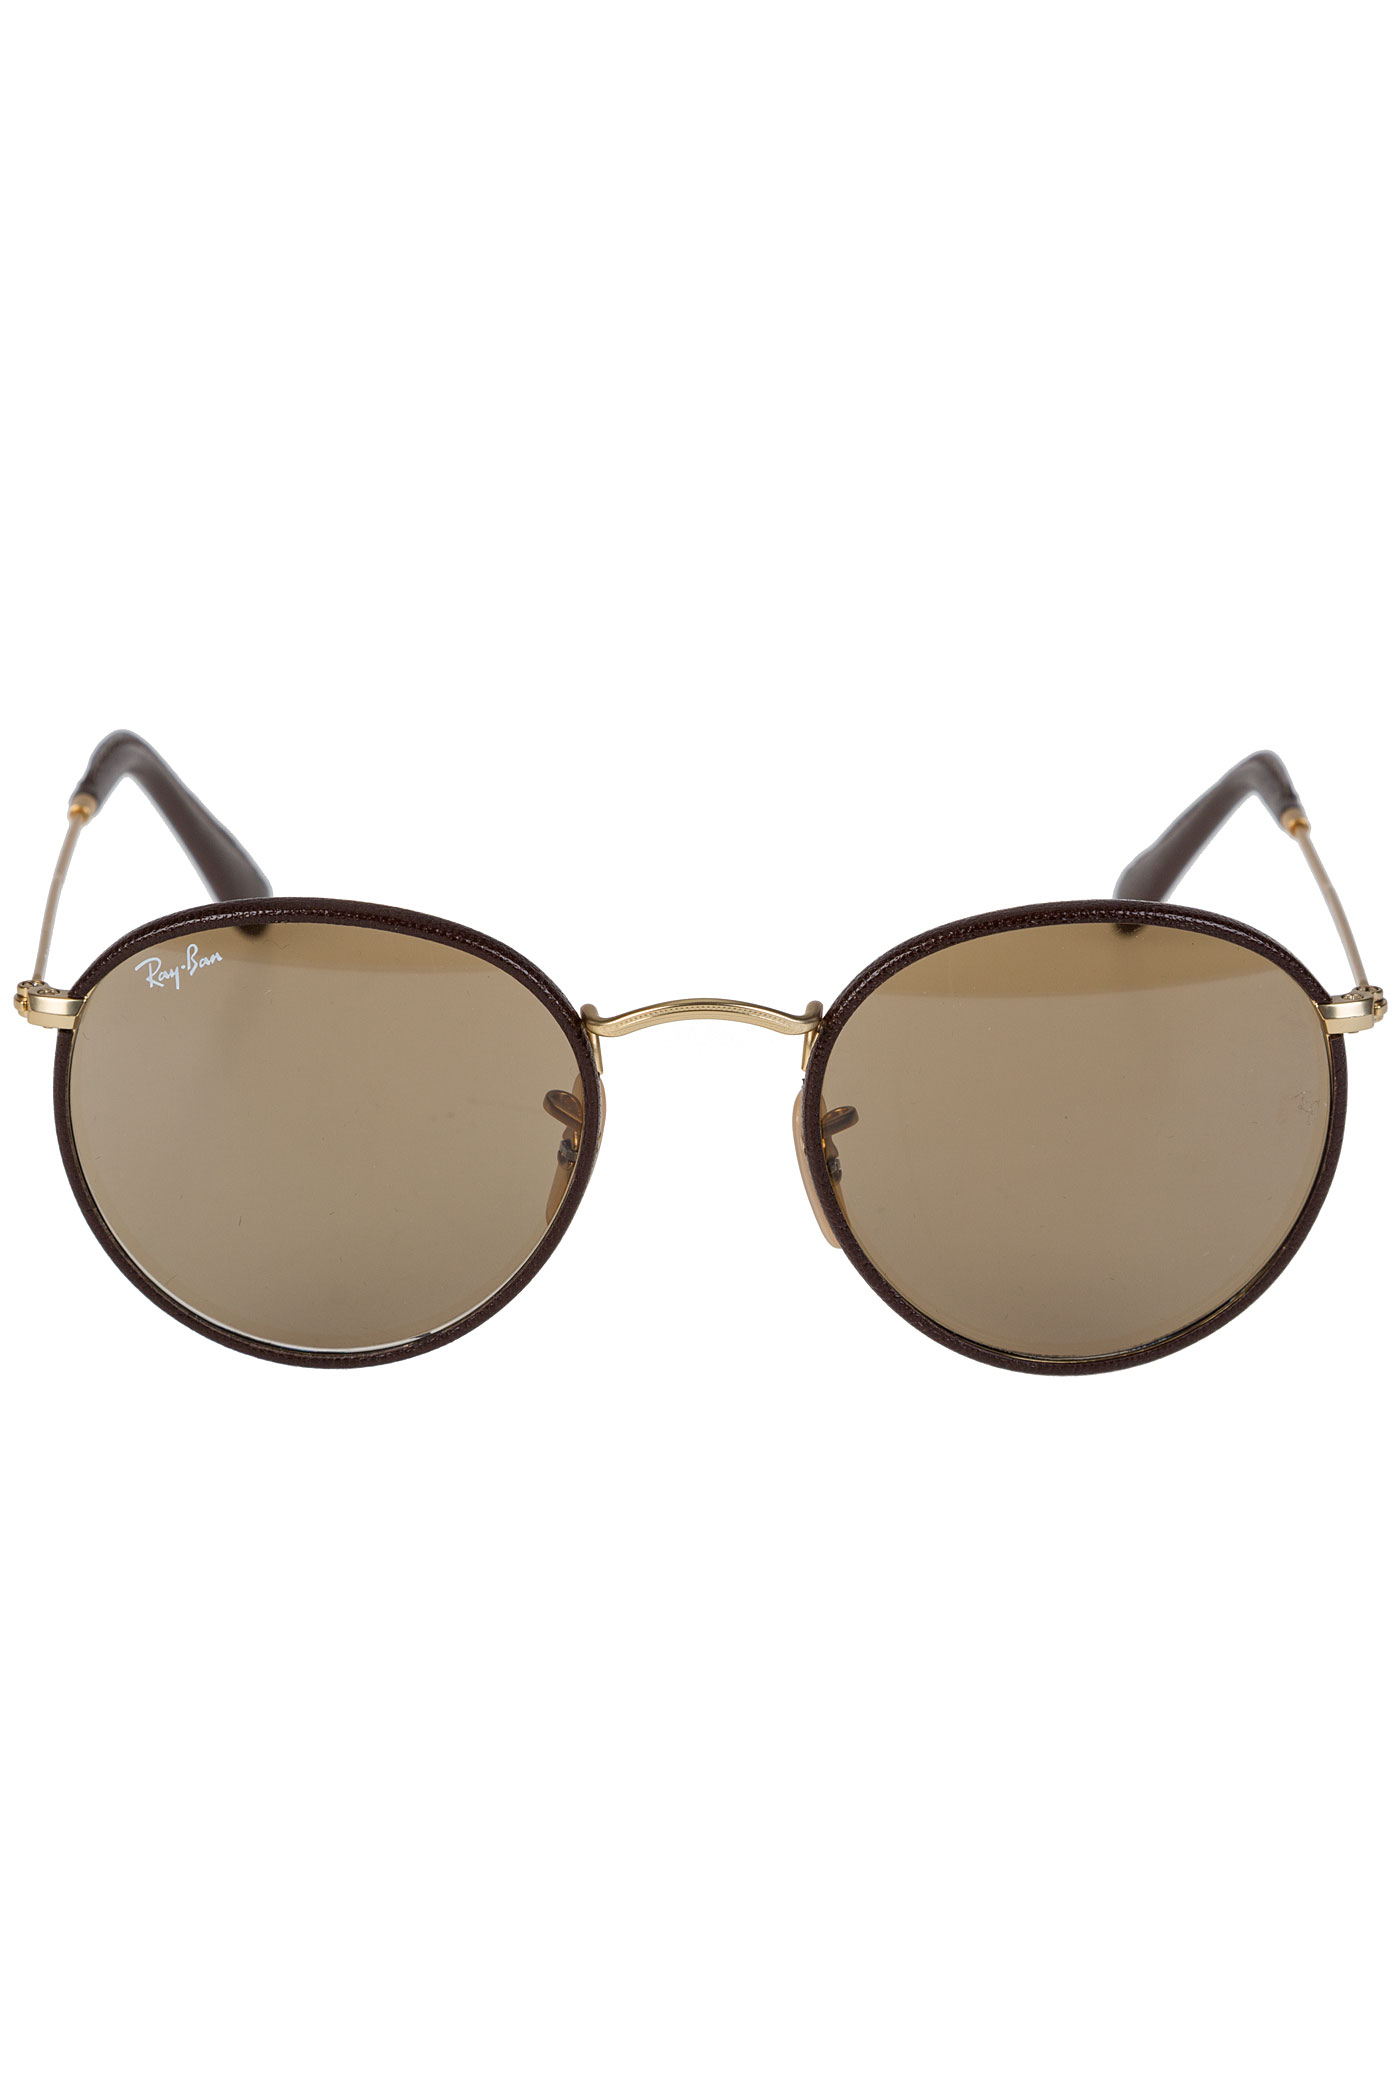 Ray ban round craft sunglasses 50mm matte arista brown for Ray ban round craft